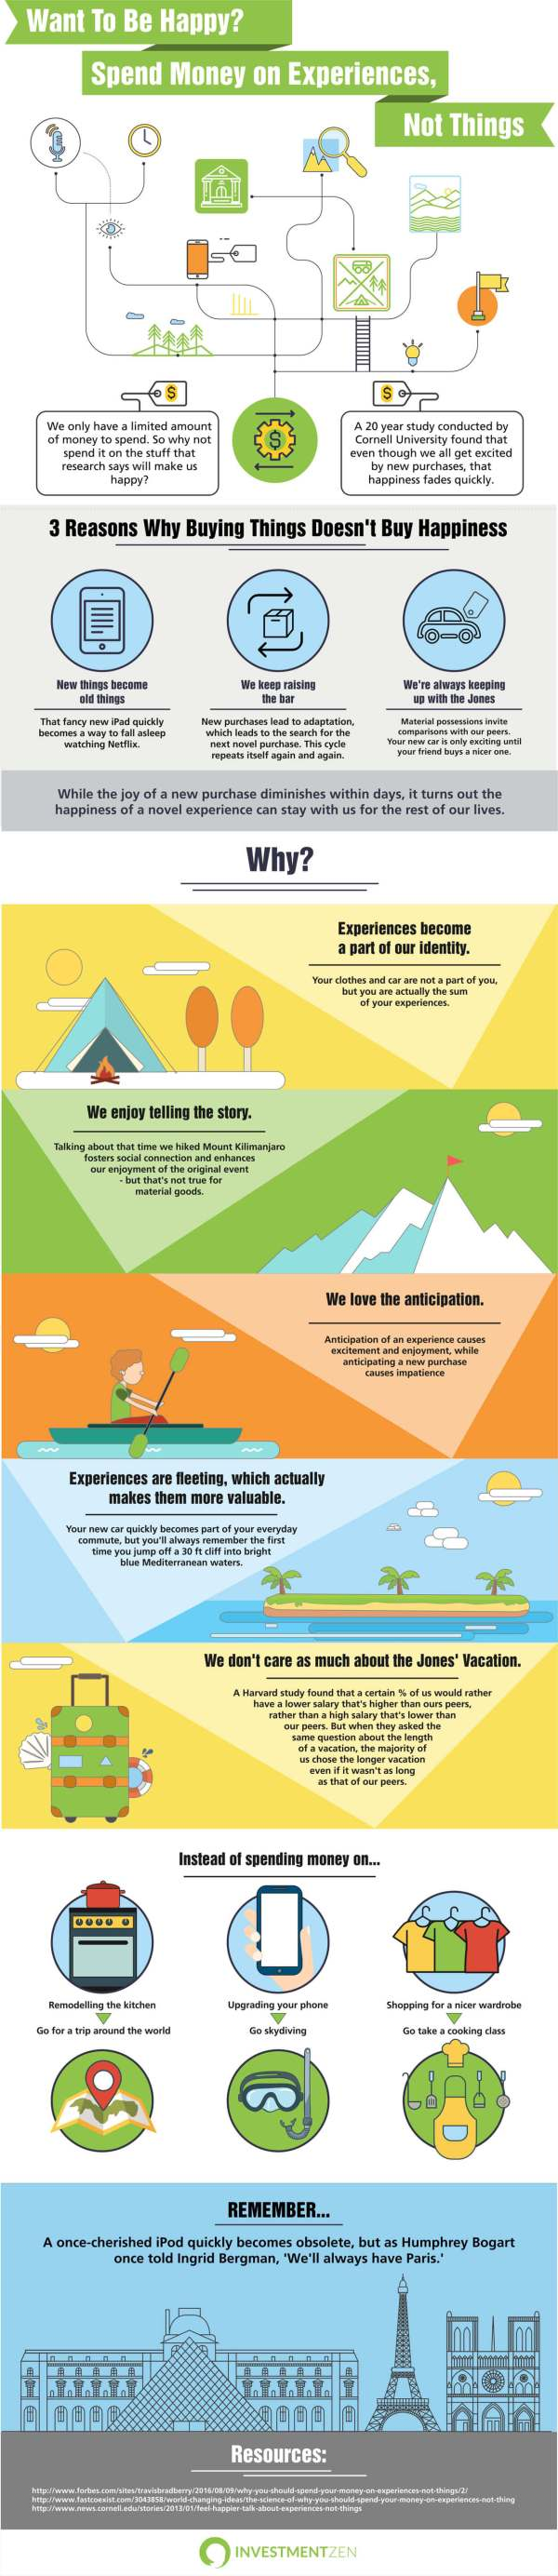 if-you-want-to-be-happy-spend-money-on-experiences_infographic